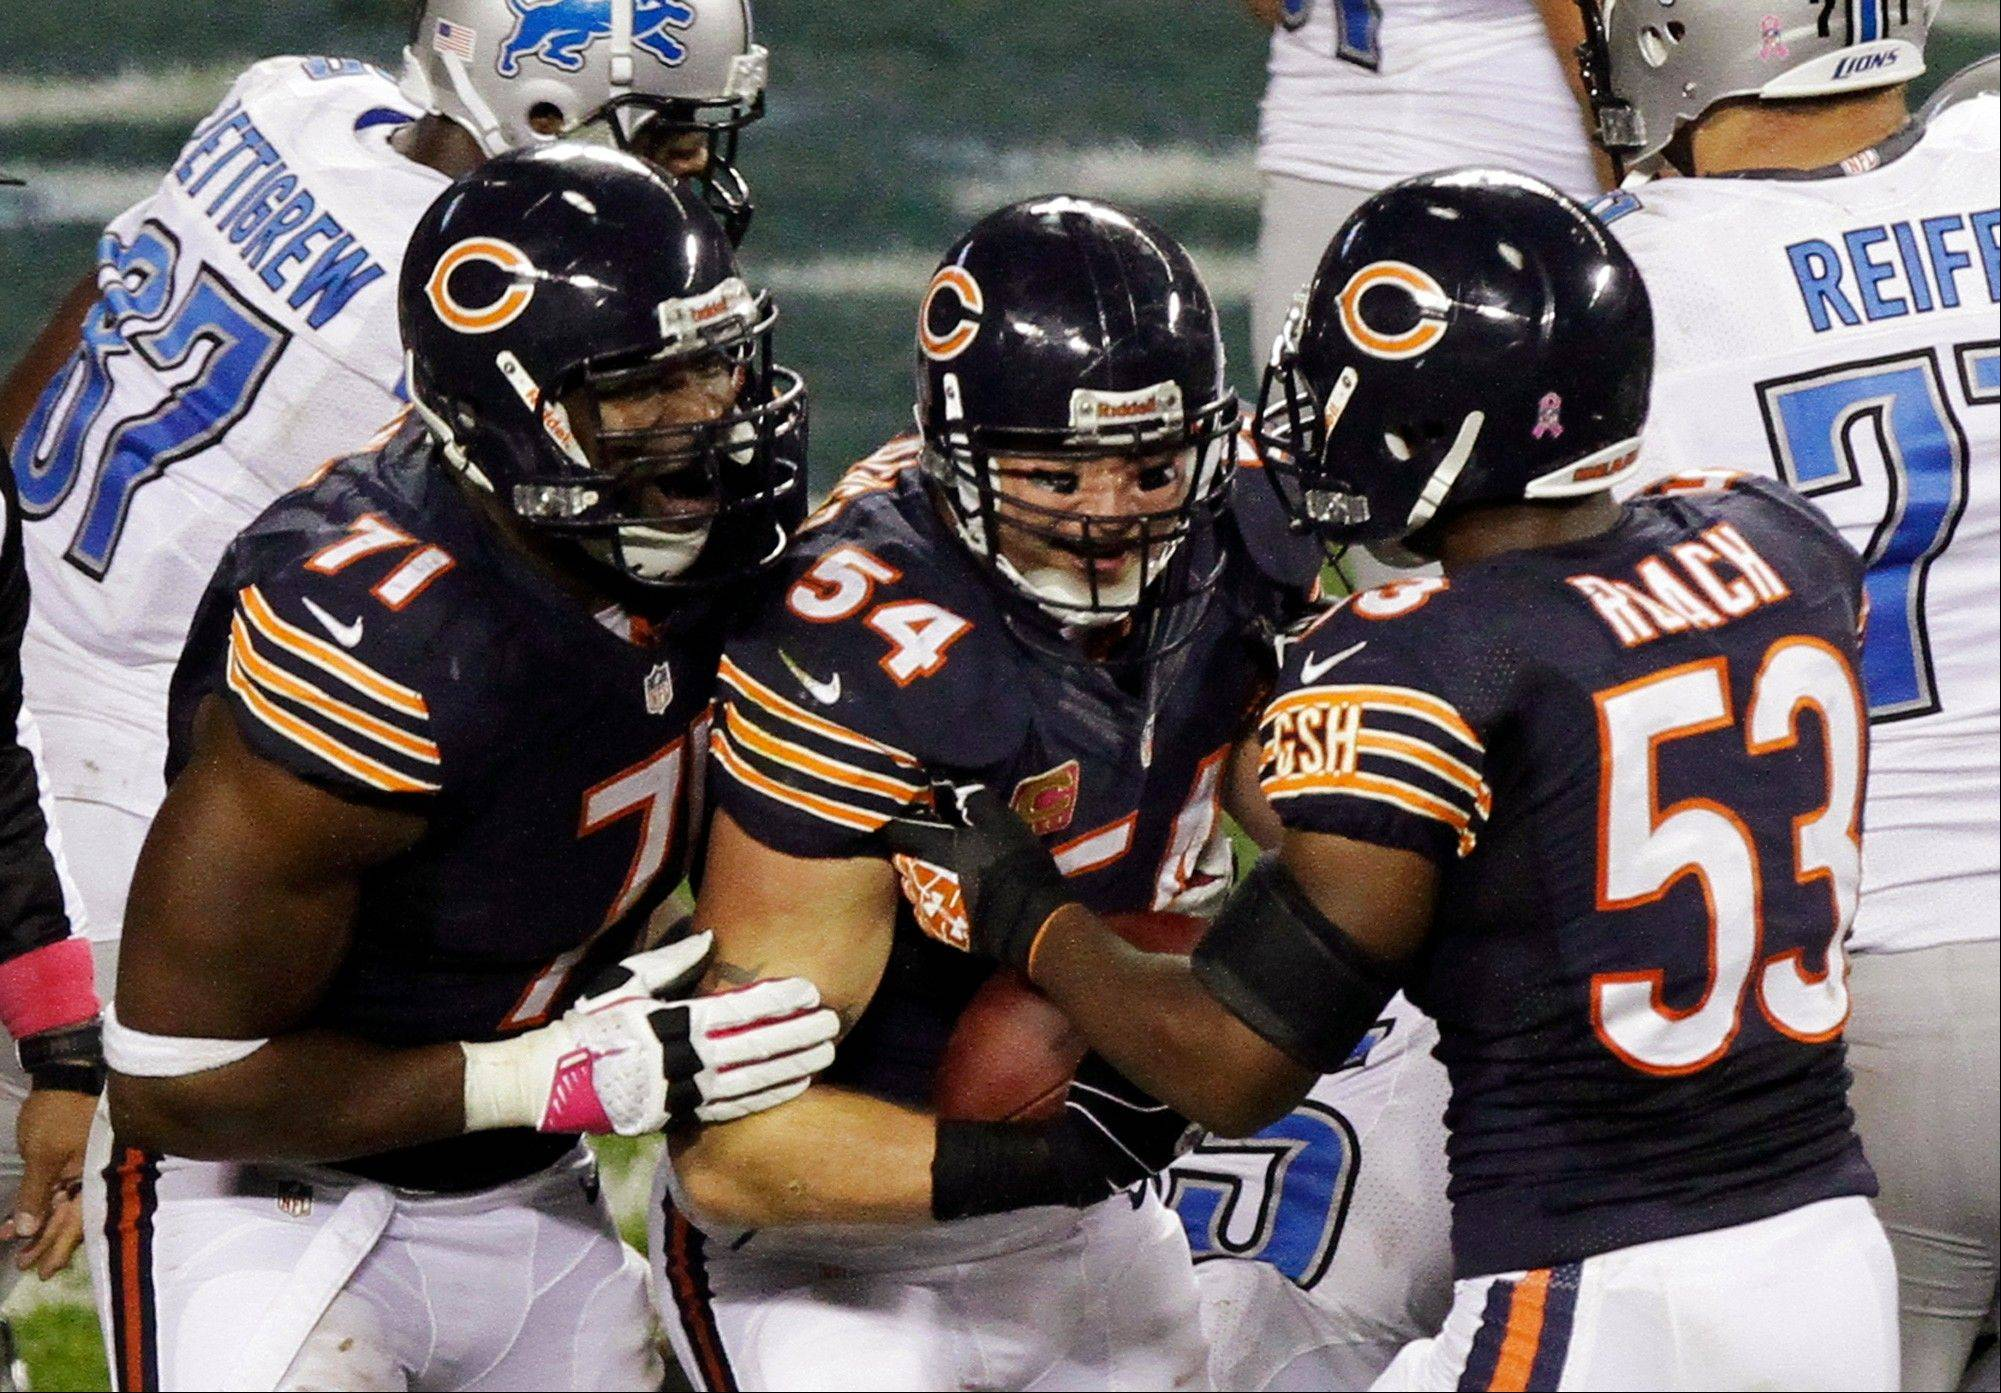 Brian Urlacher (54) celebrates with Israel Idonije (71) and Nick Roach (53) after he recovered fumble against the Detroit Lions earlier this season.